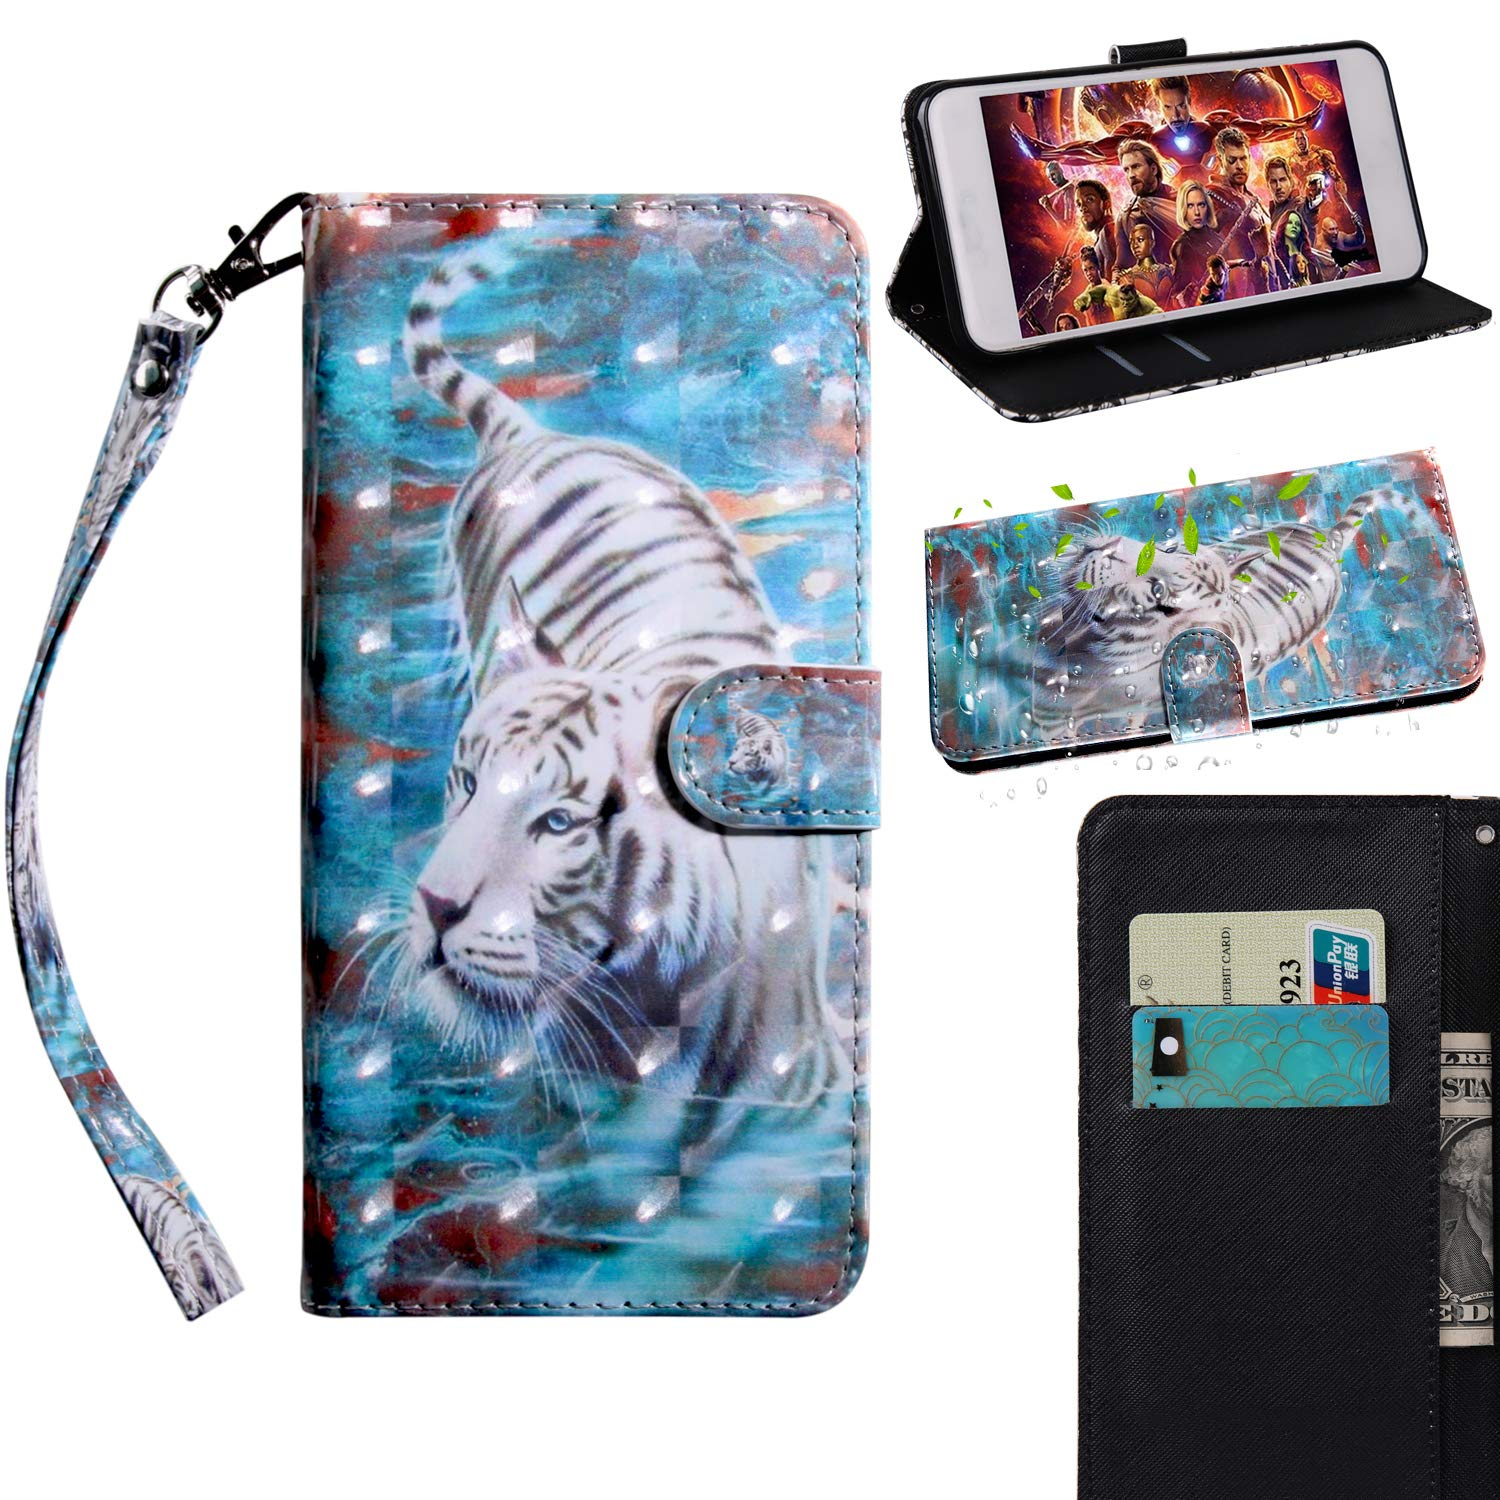 Maoerdo LG Stylo 4 Wallet Case,3D Beauty Luxury Fashion PU Flip Stand Credit Card ID Holders Wallet Leather Case Cover for LG Stylo 4 Plus/LG Q Stylus - White Tiger